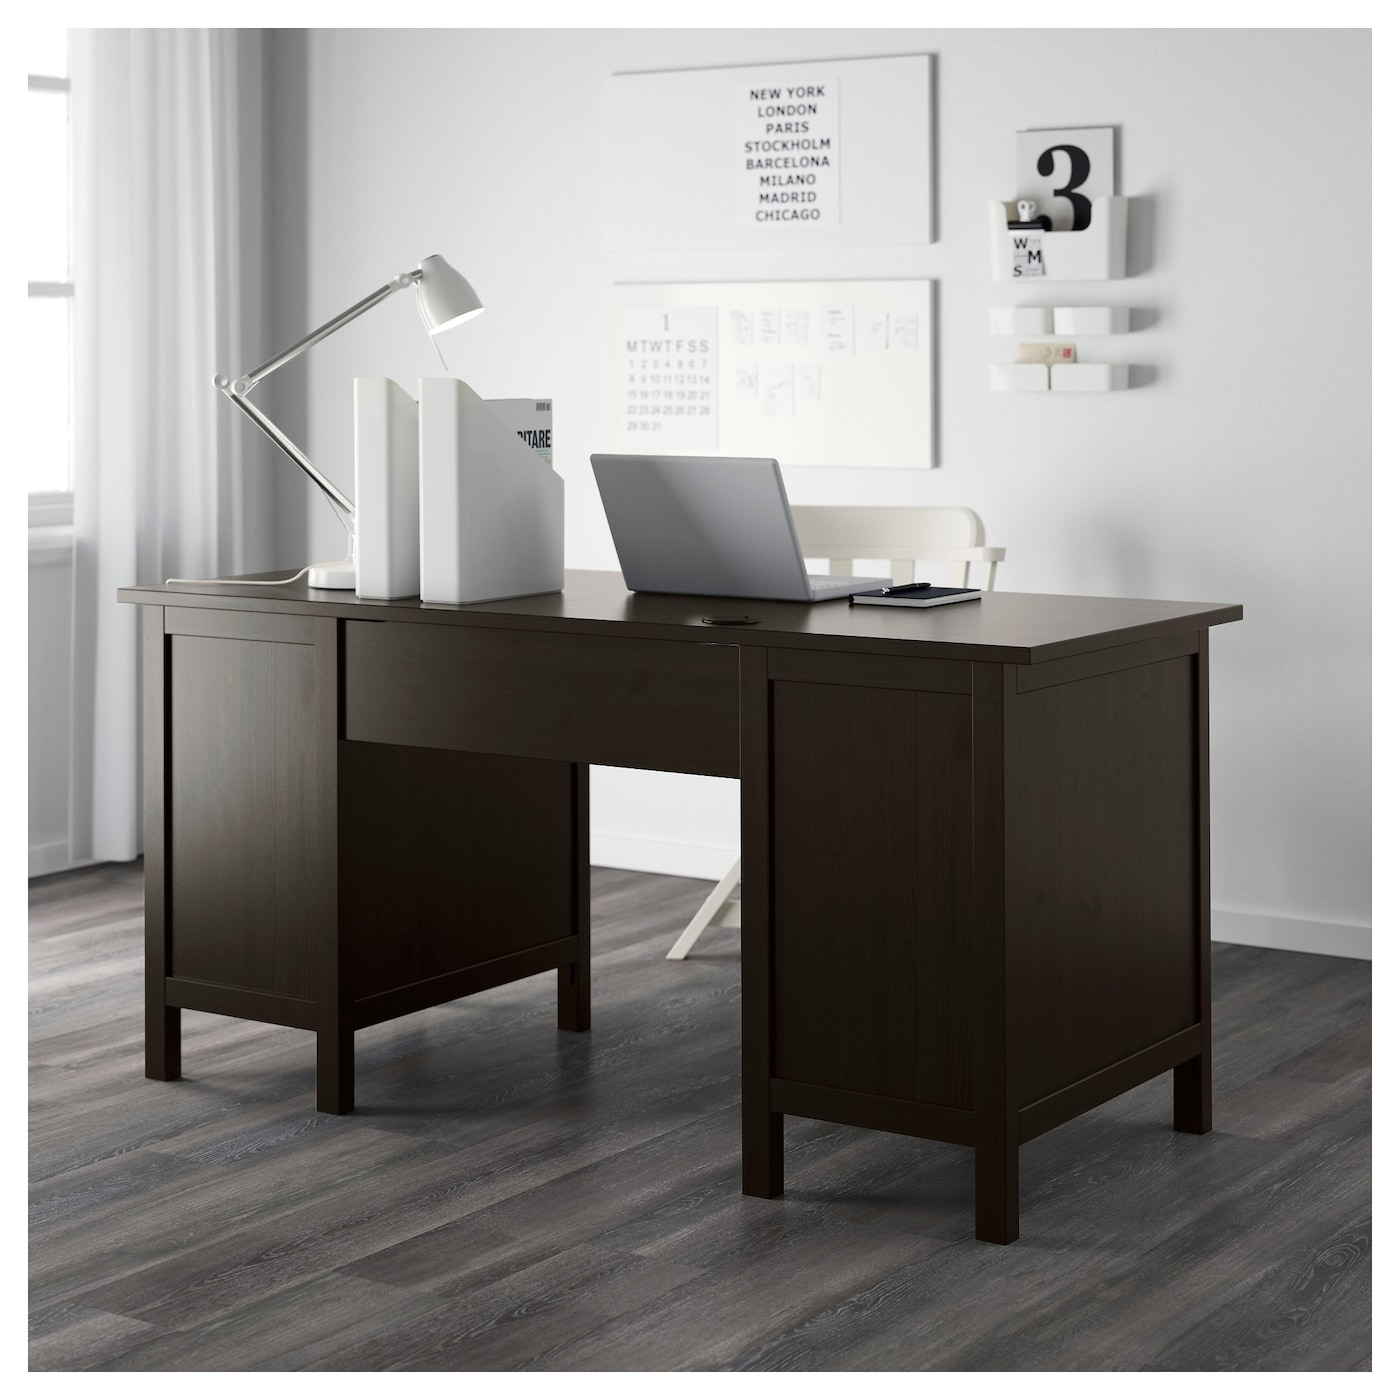 hemnes desk black brown 155 x 65 cm ikea. Black Bedroom Furniture Sets. Home Design Ideas